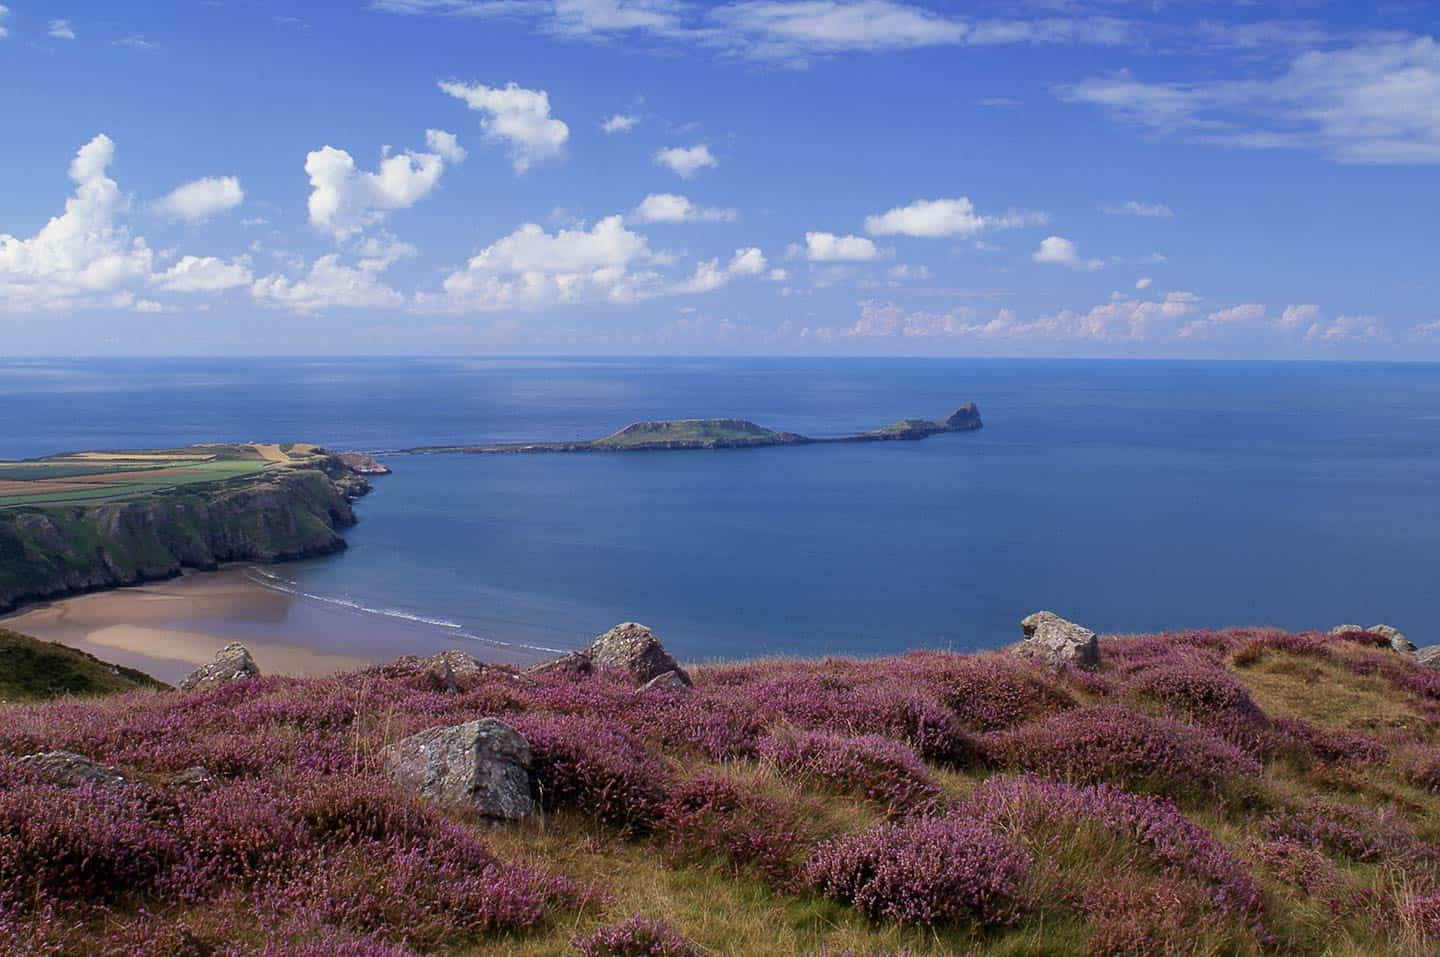 Image of Worm's Head tidal island from Rhossili, Gower, Wales